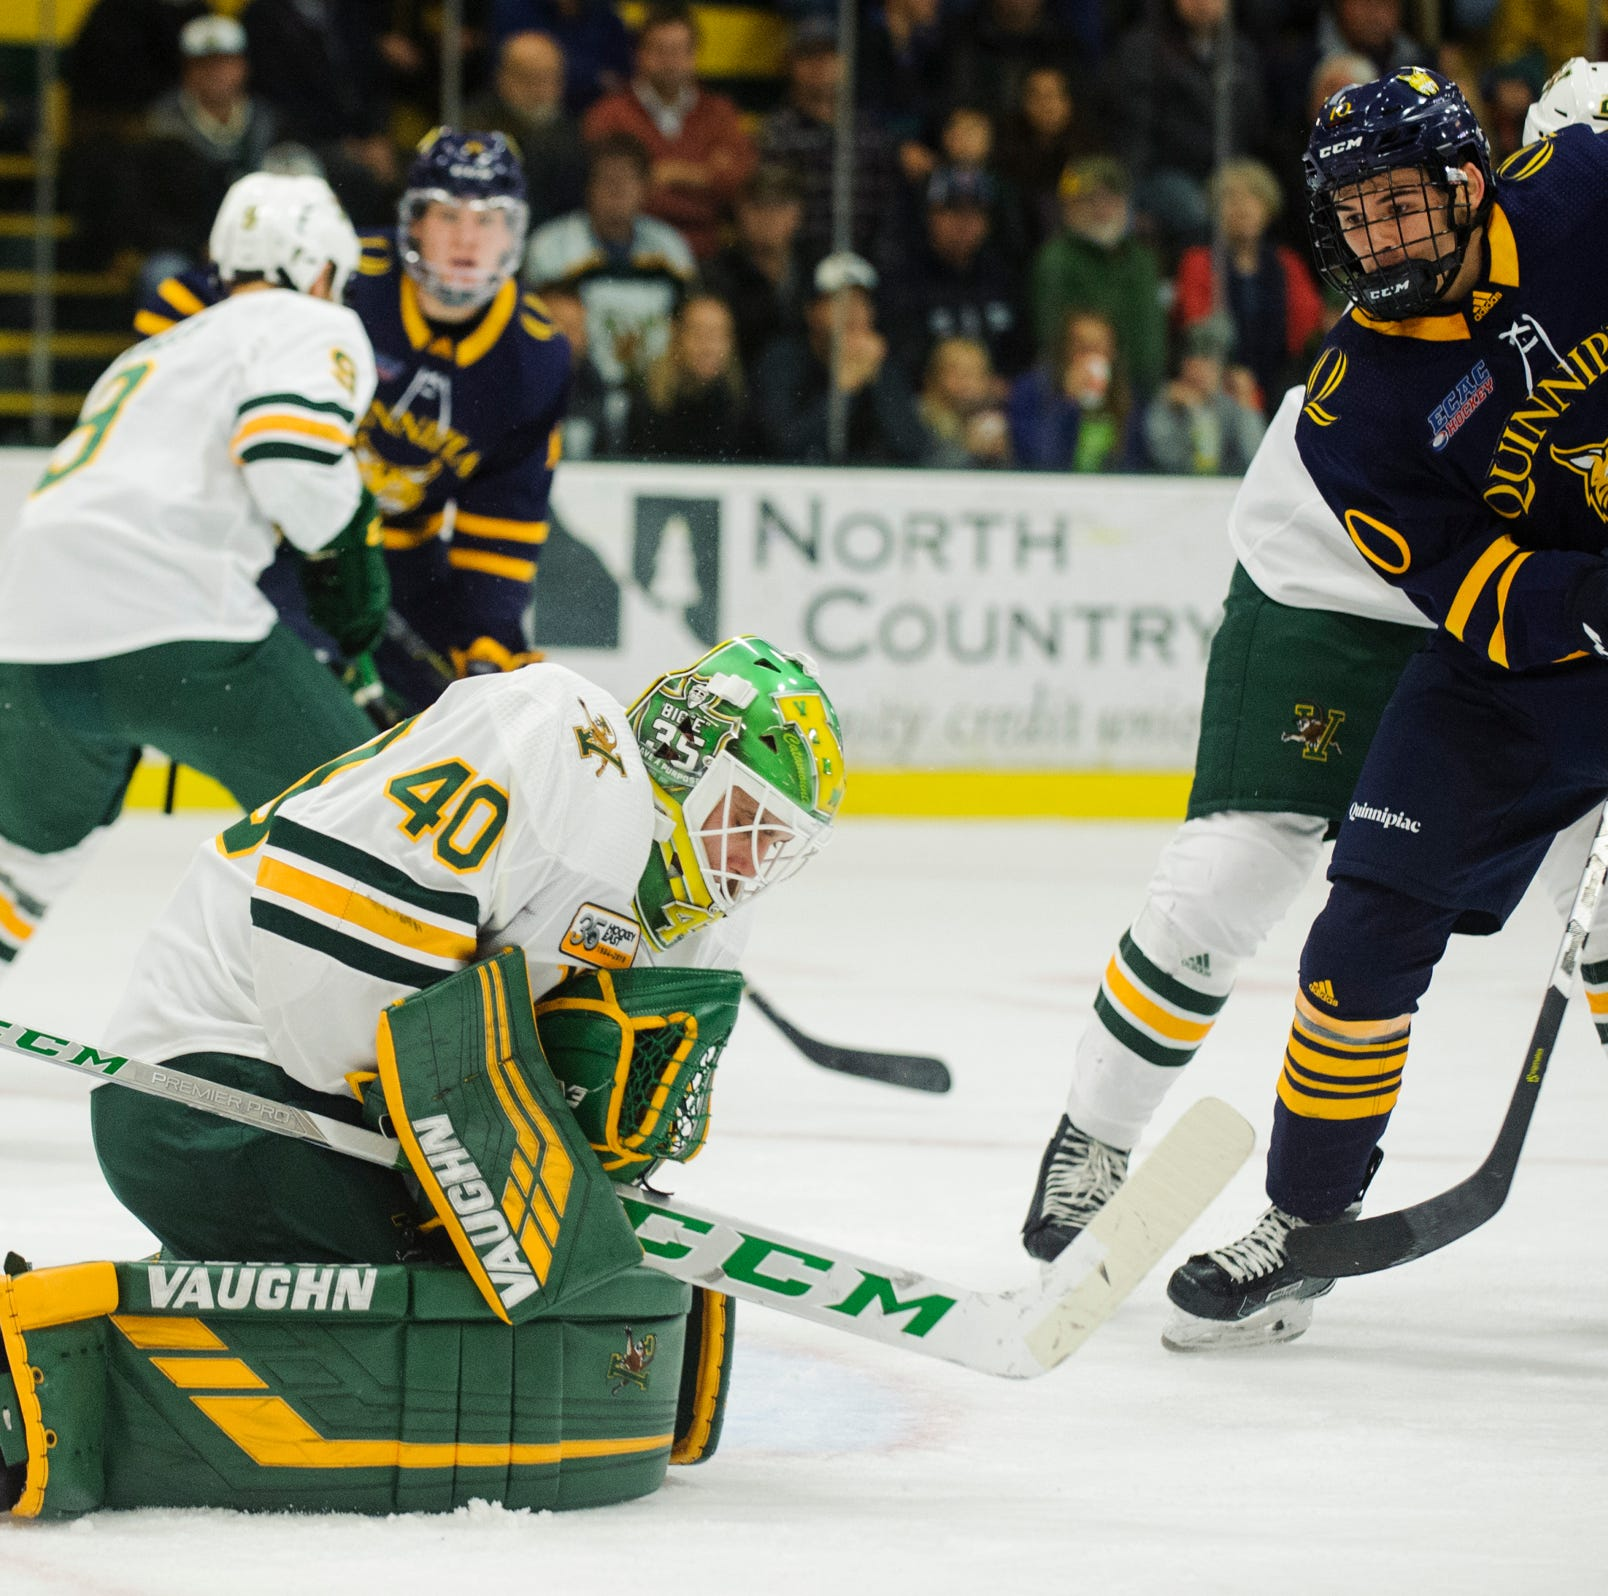 UVM men's hockey blows lead in final minutes, falls to Quinnipiac 3-2